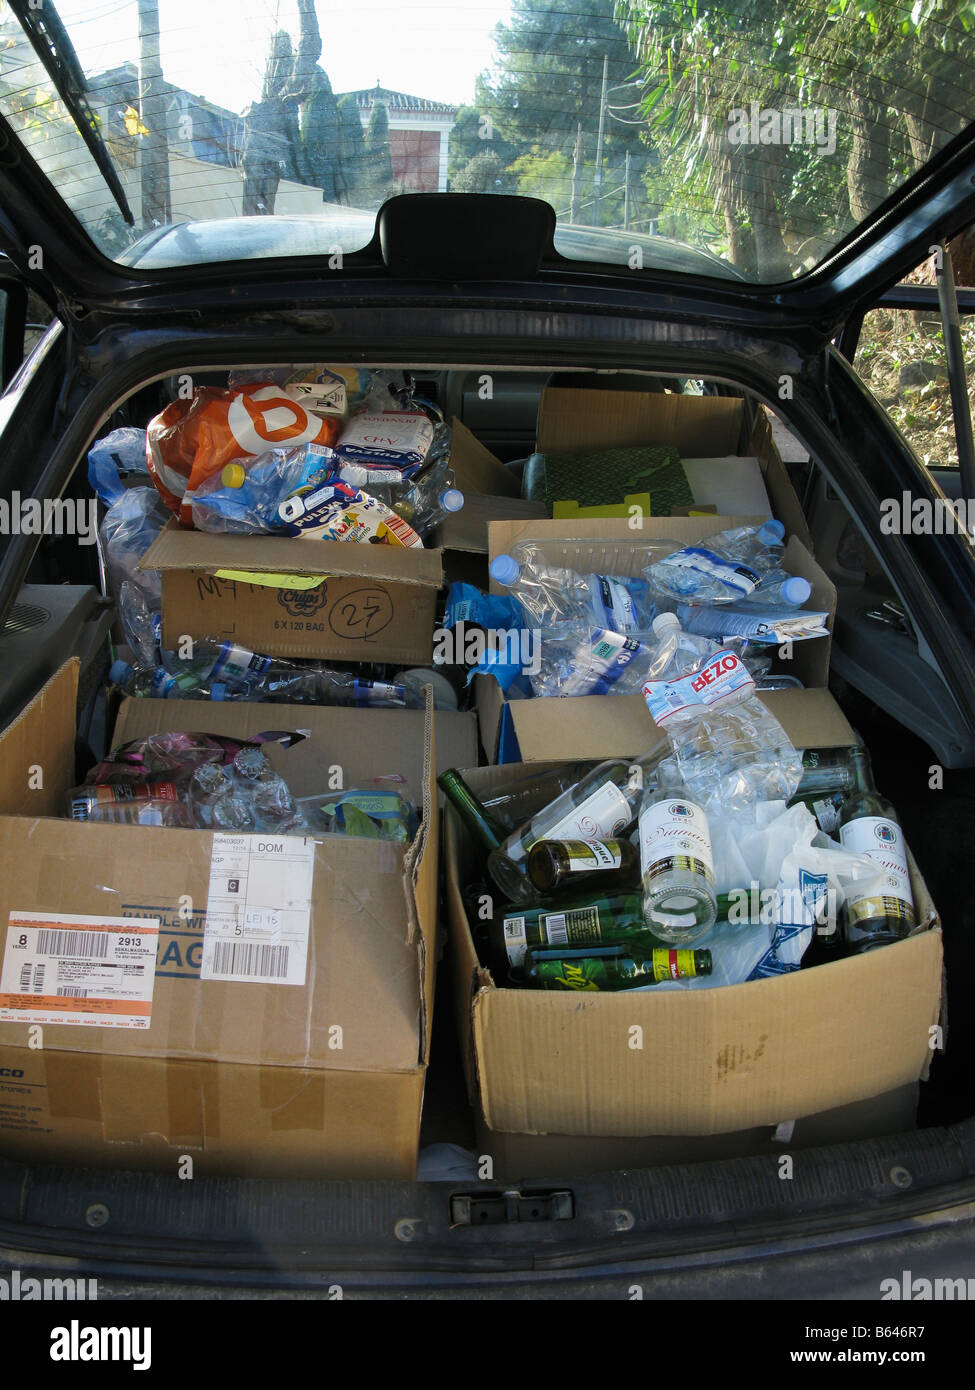 Car boot full of recyclable rubish - Stock Image